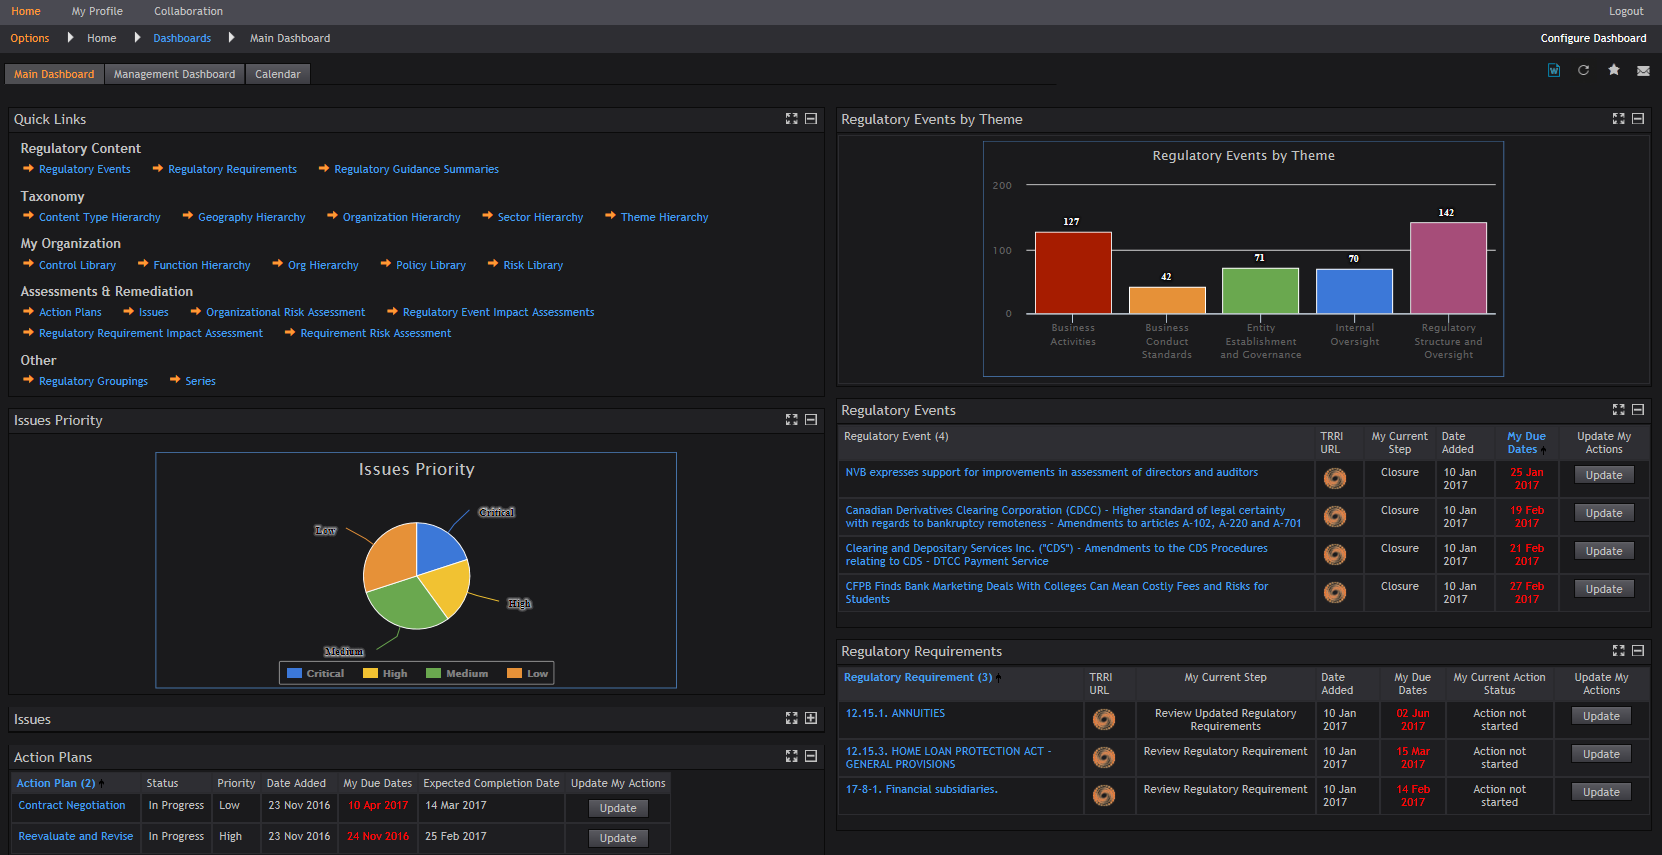 Regulatory Change Management from Thomson Reuters: Dashboard view